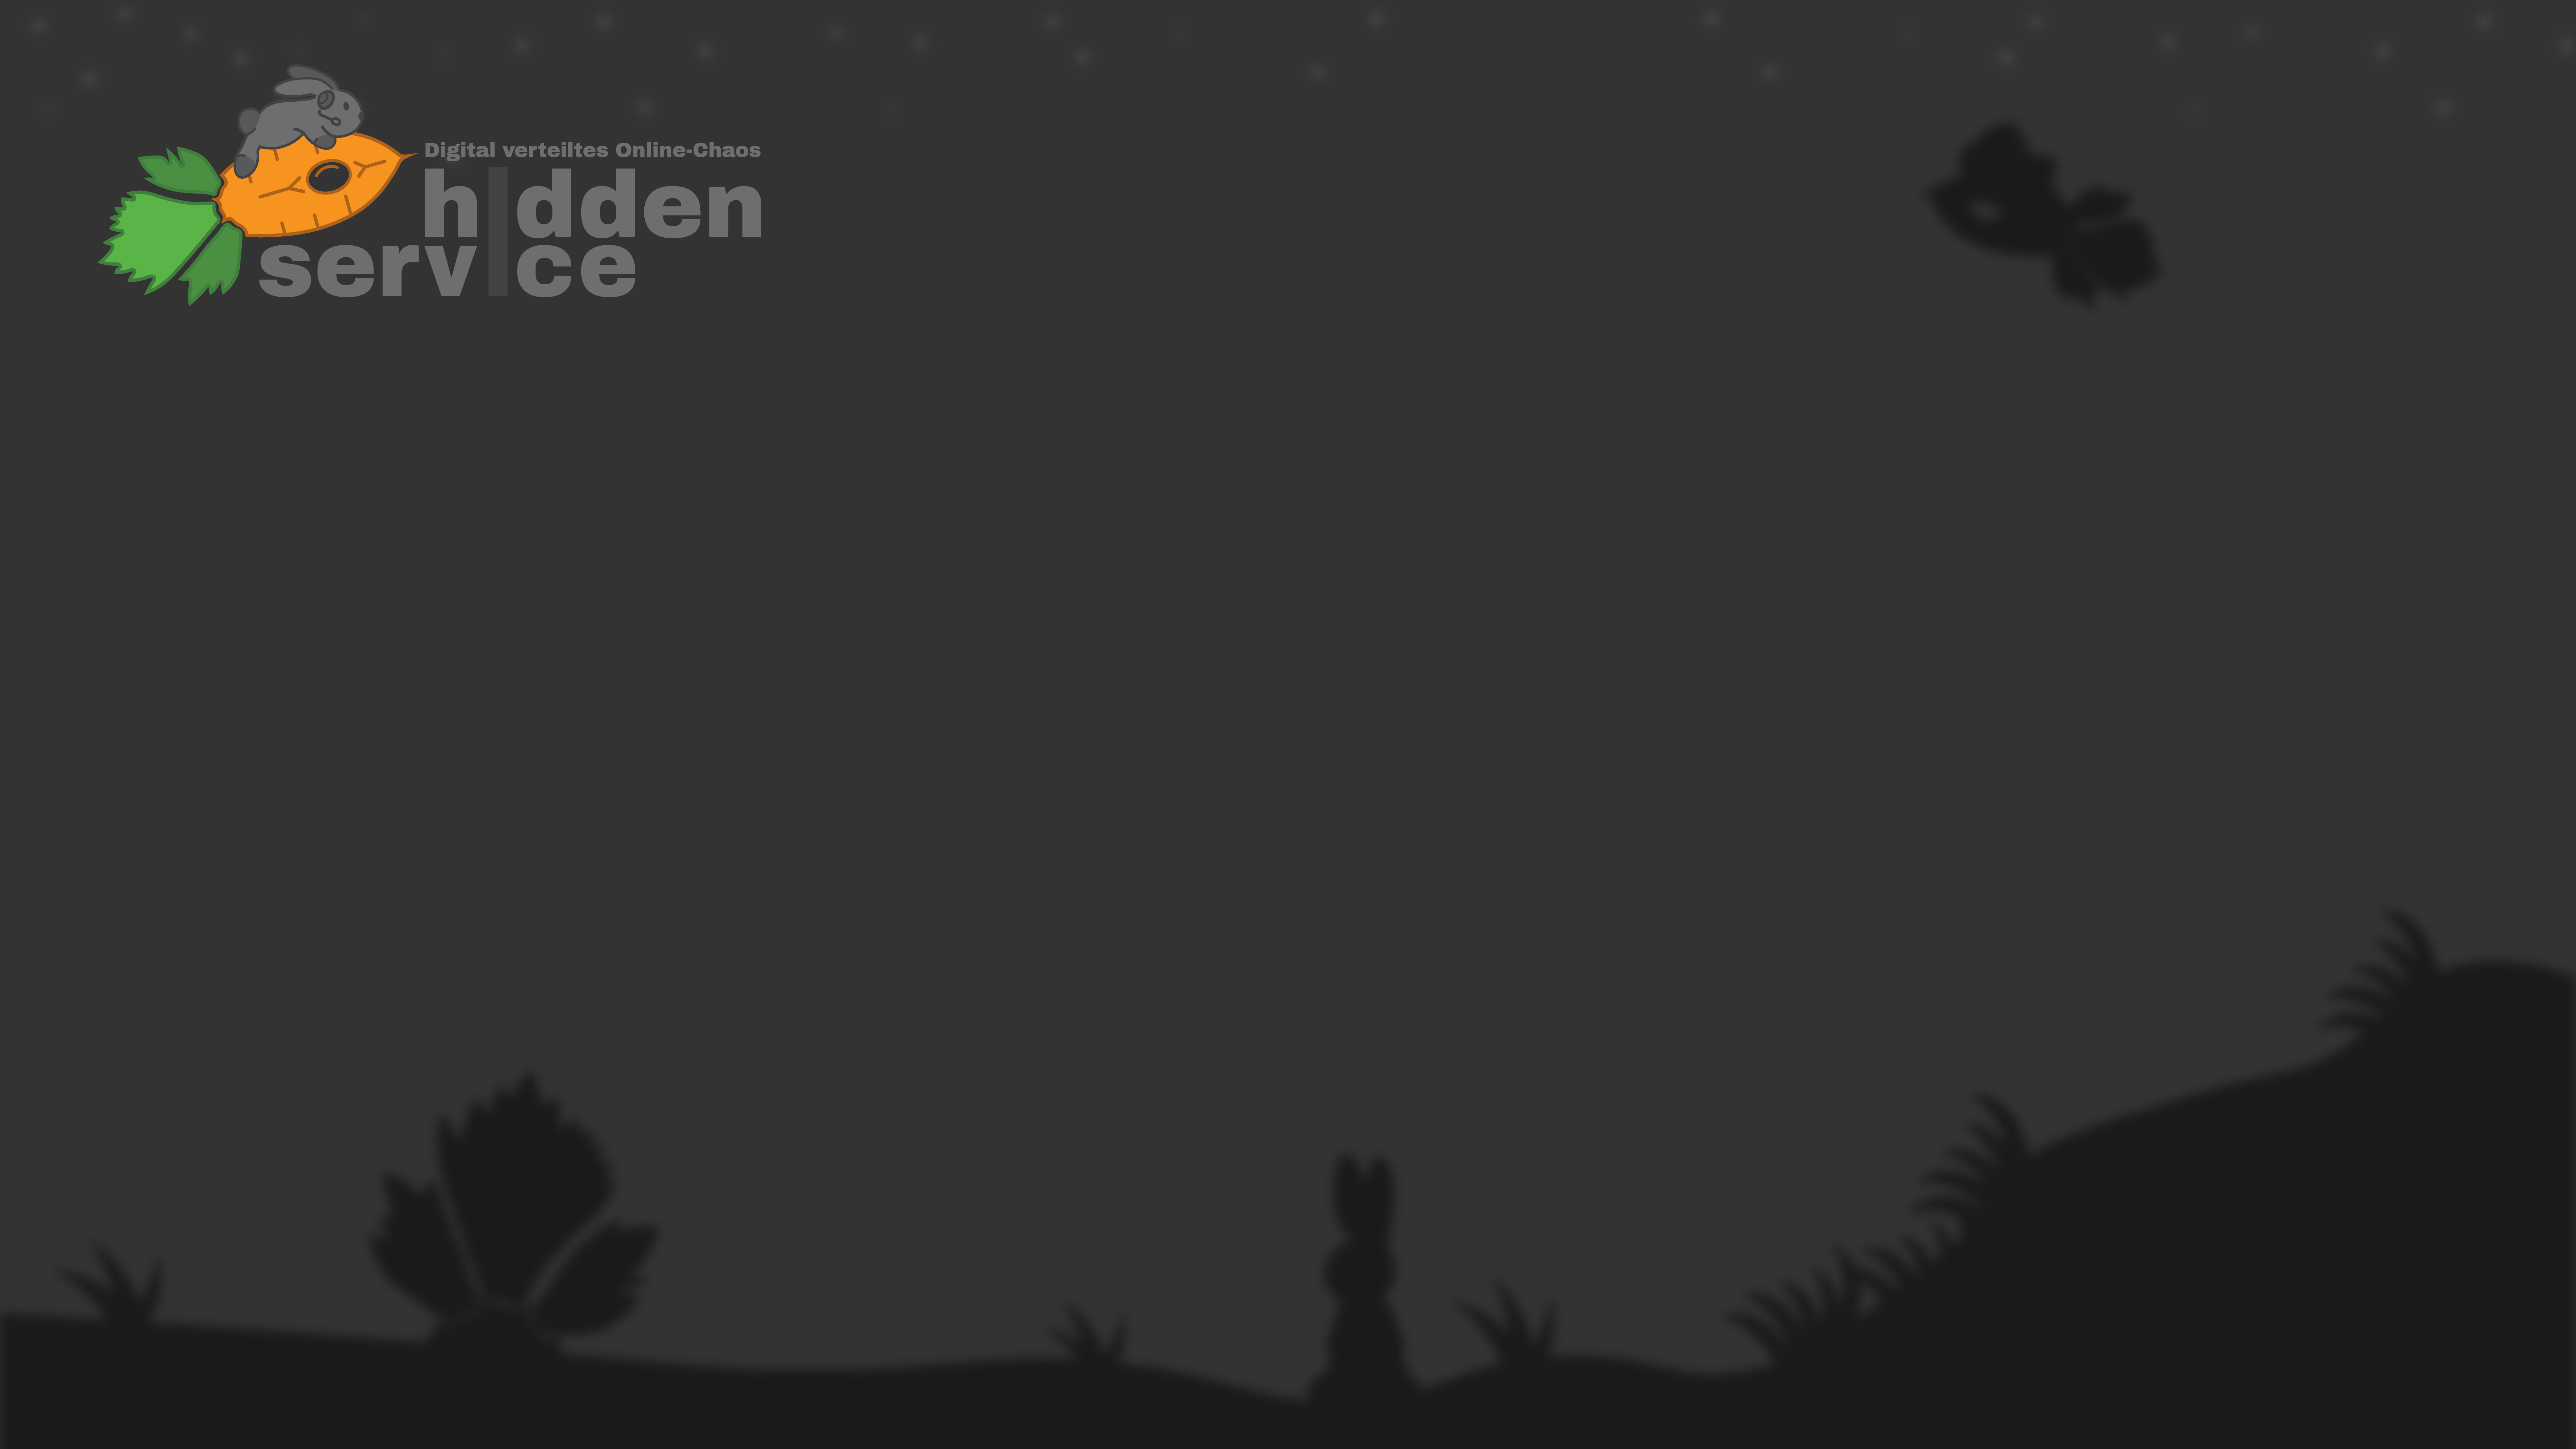 hiddenservice:hiddenservice-folien-05.png